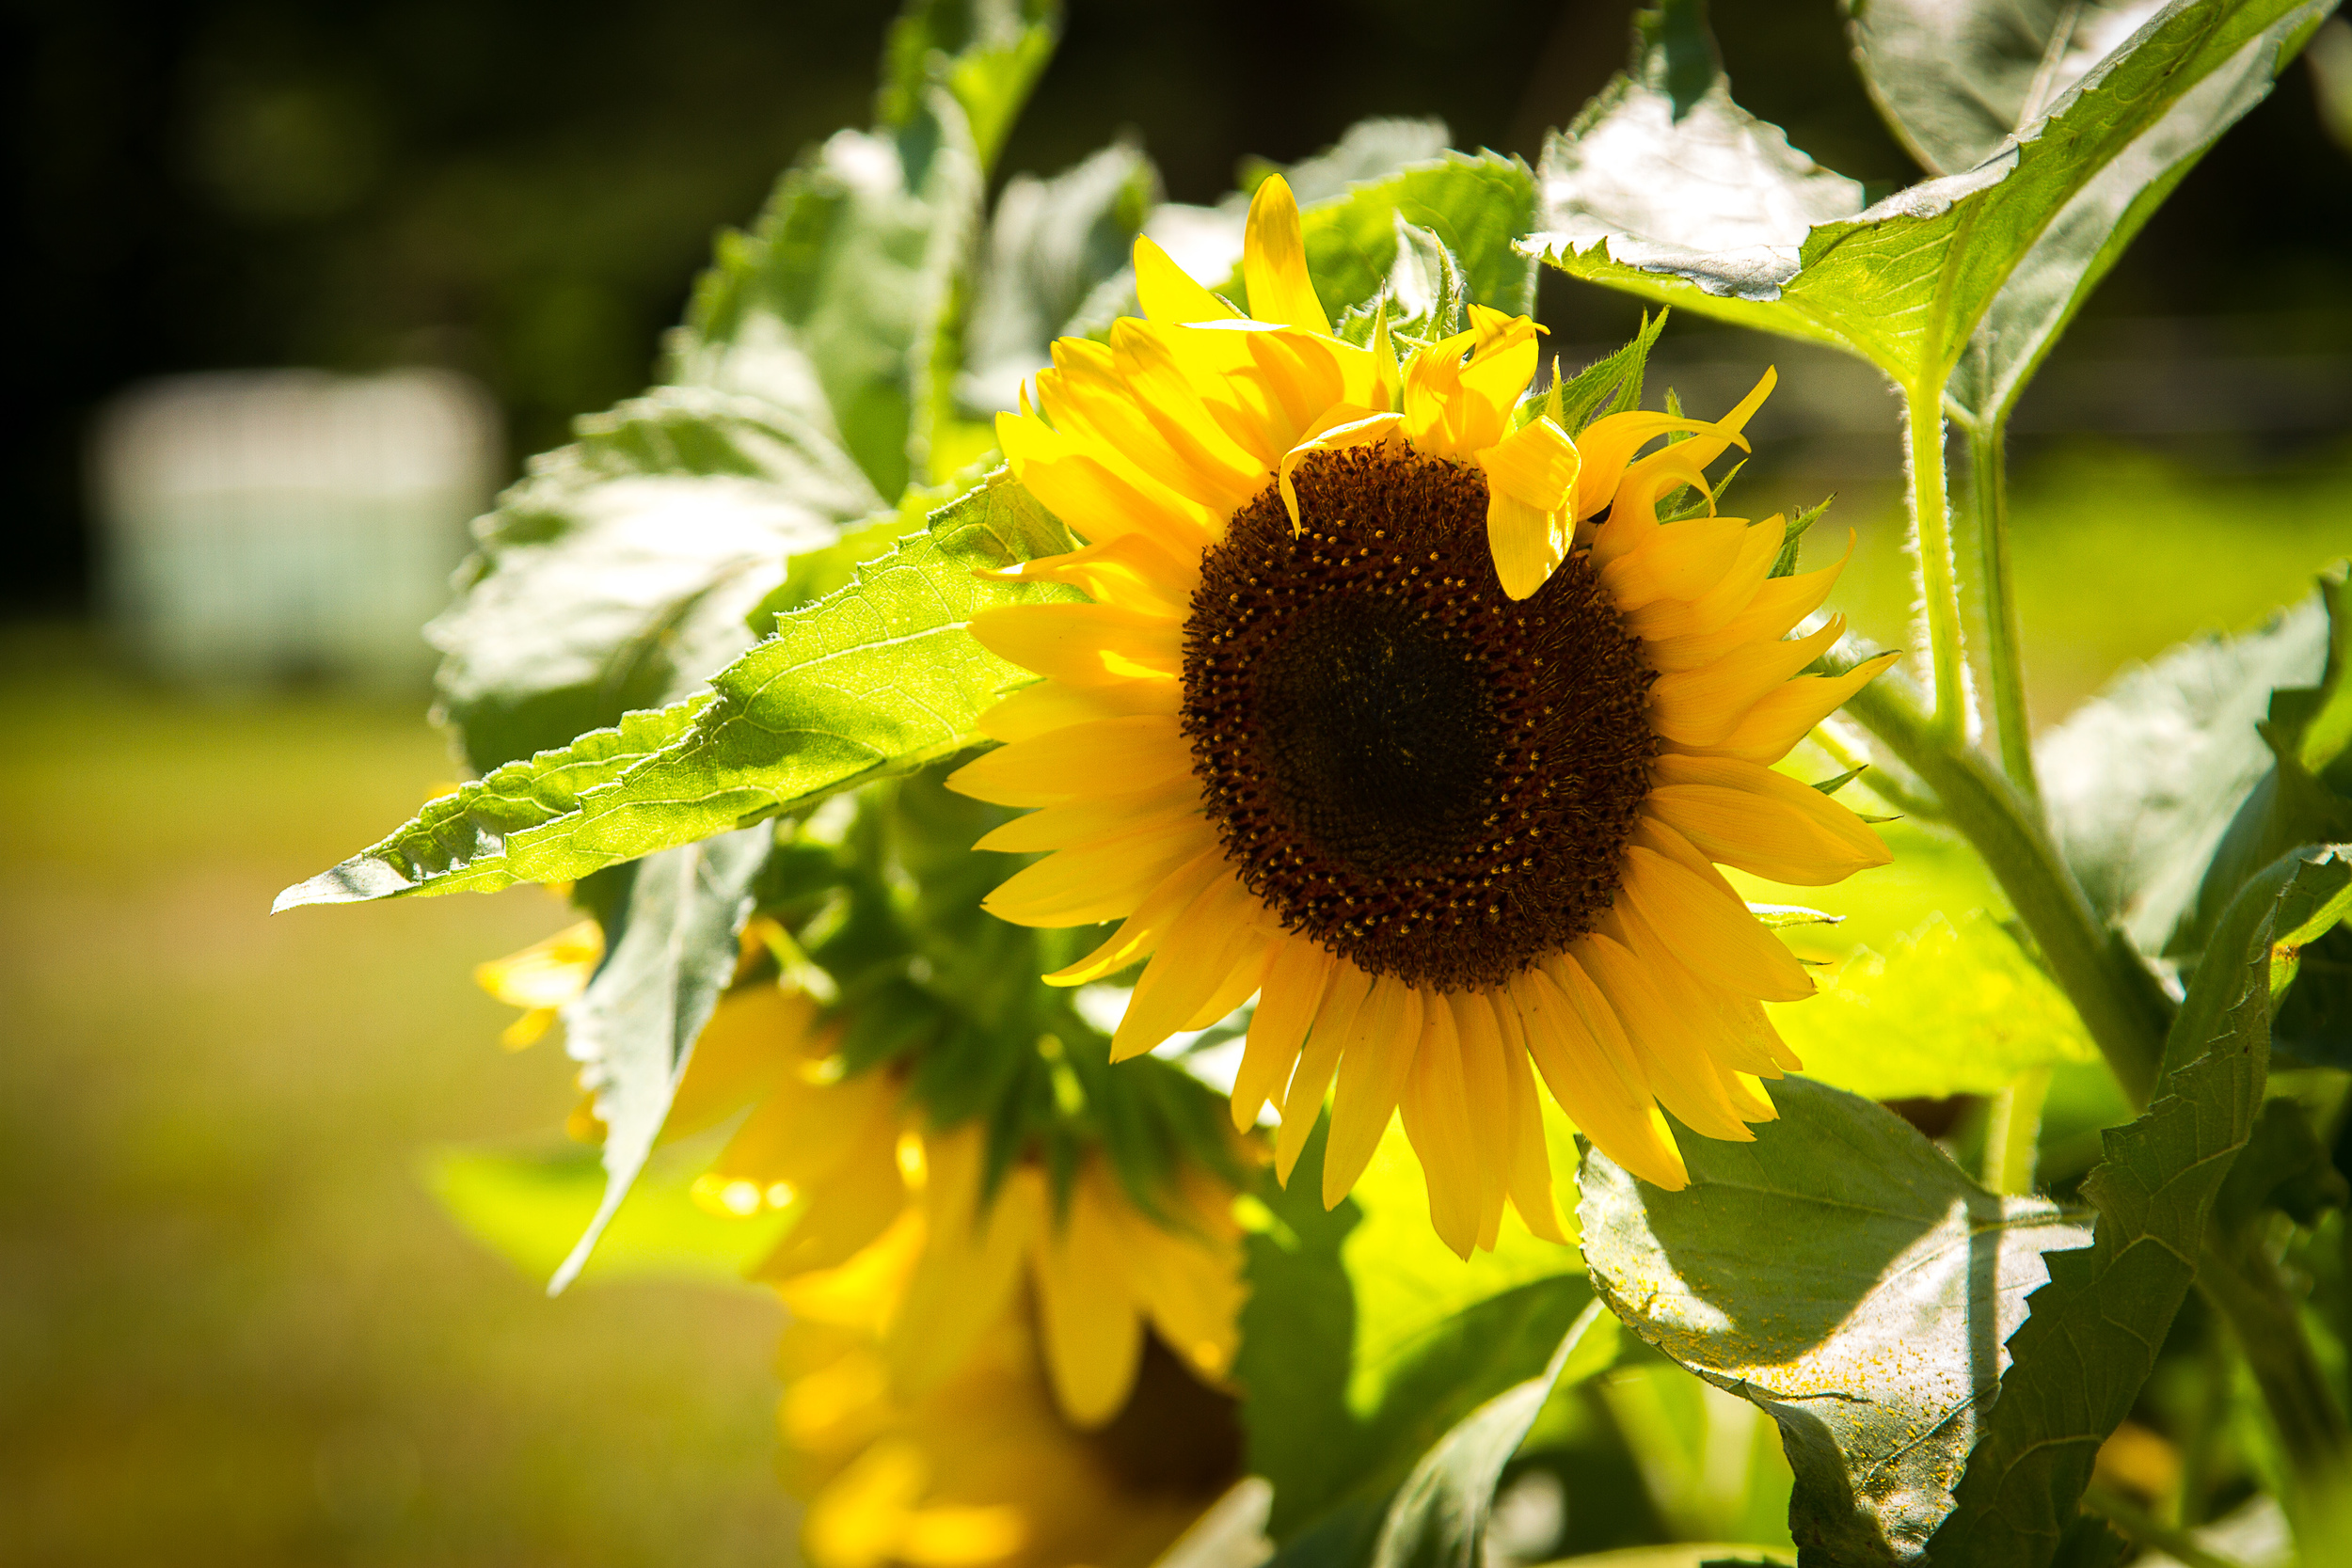 Sunflower_Art_Fest_CodyBuesing-13.jpg